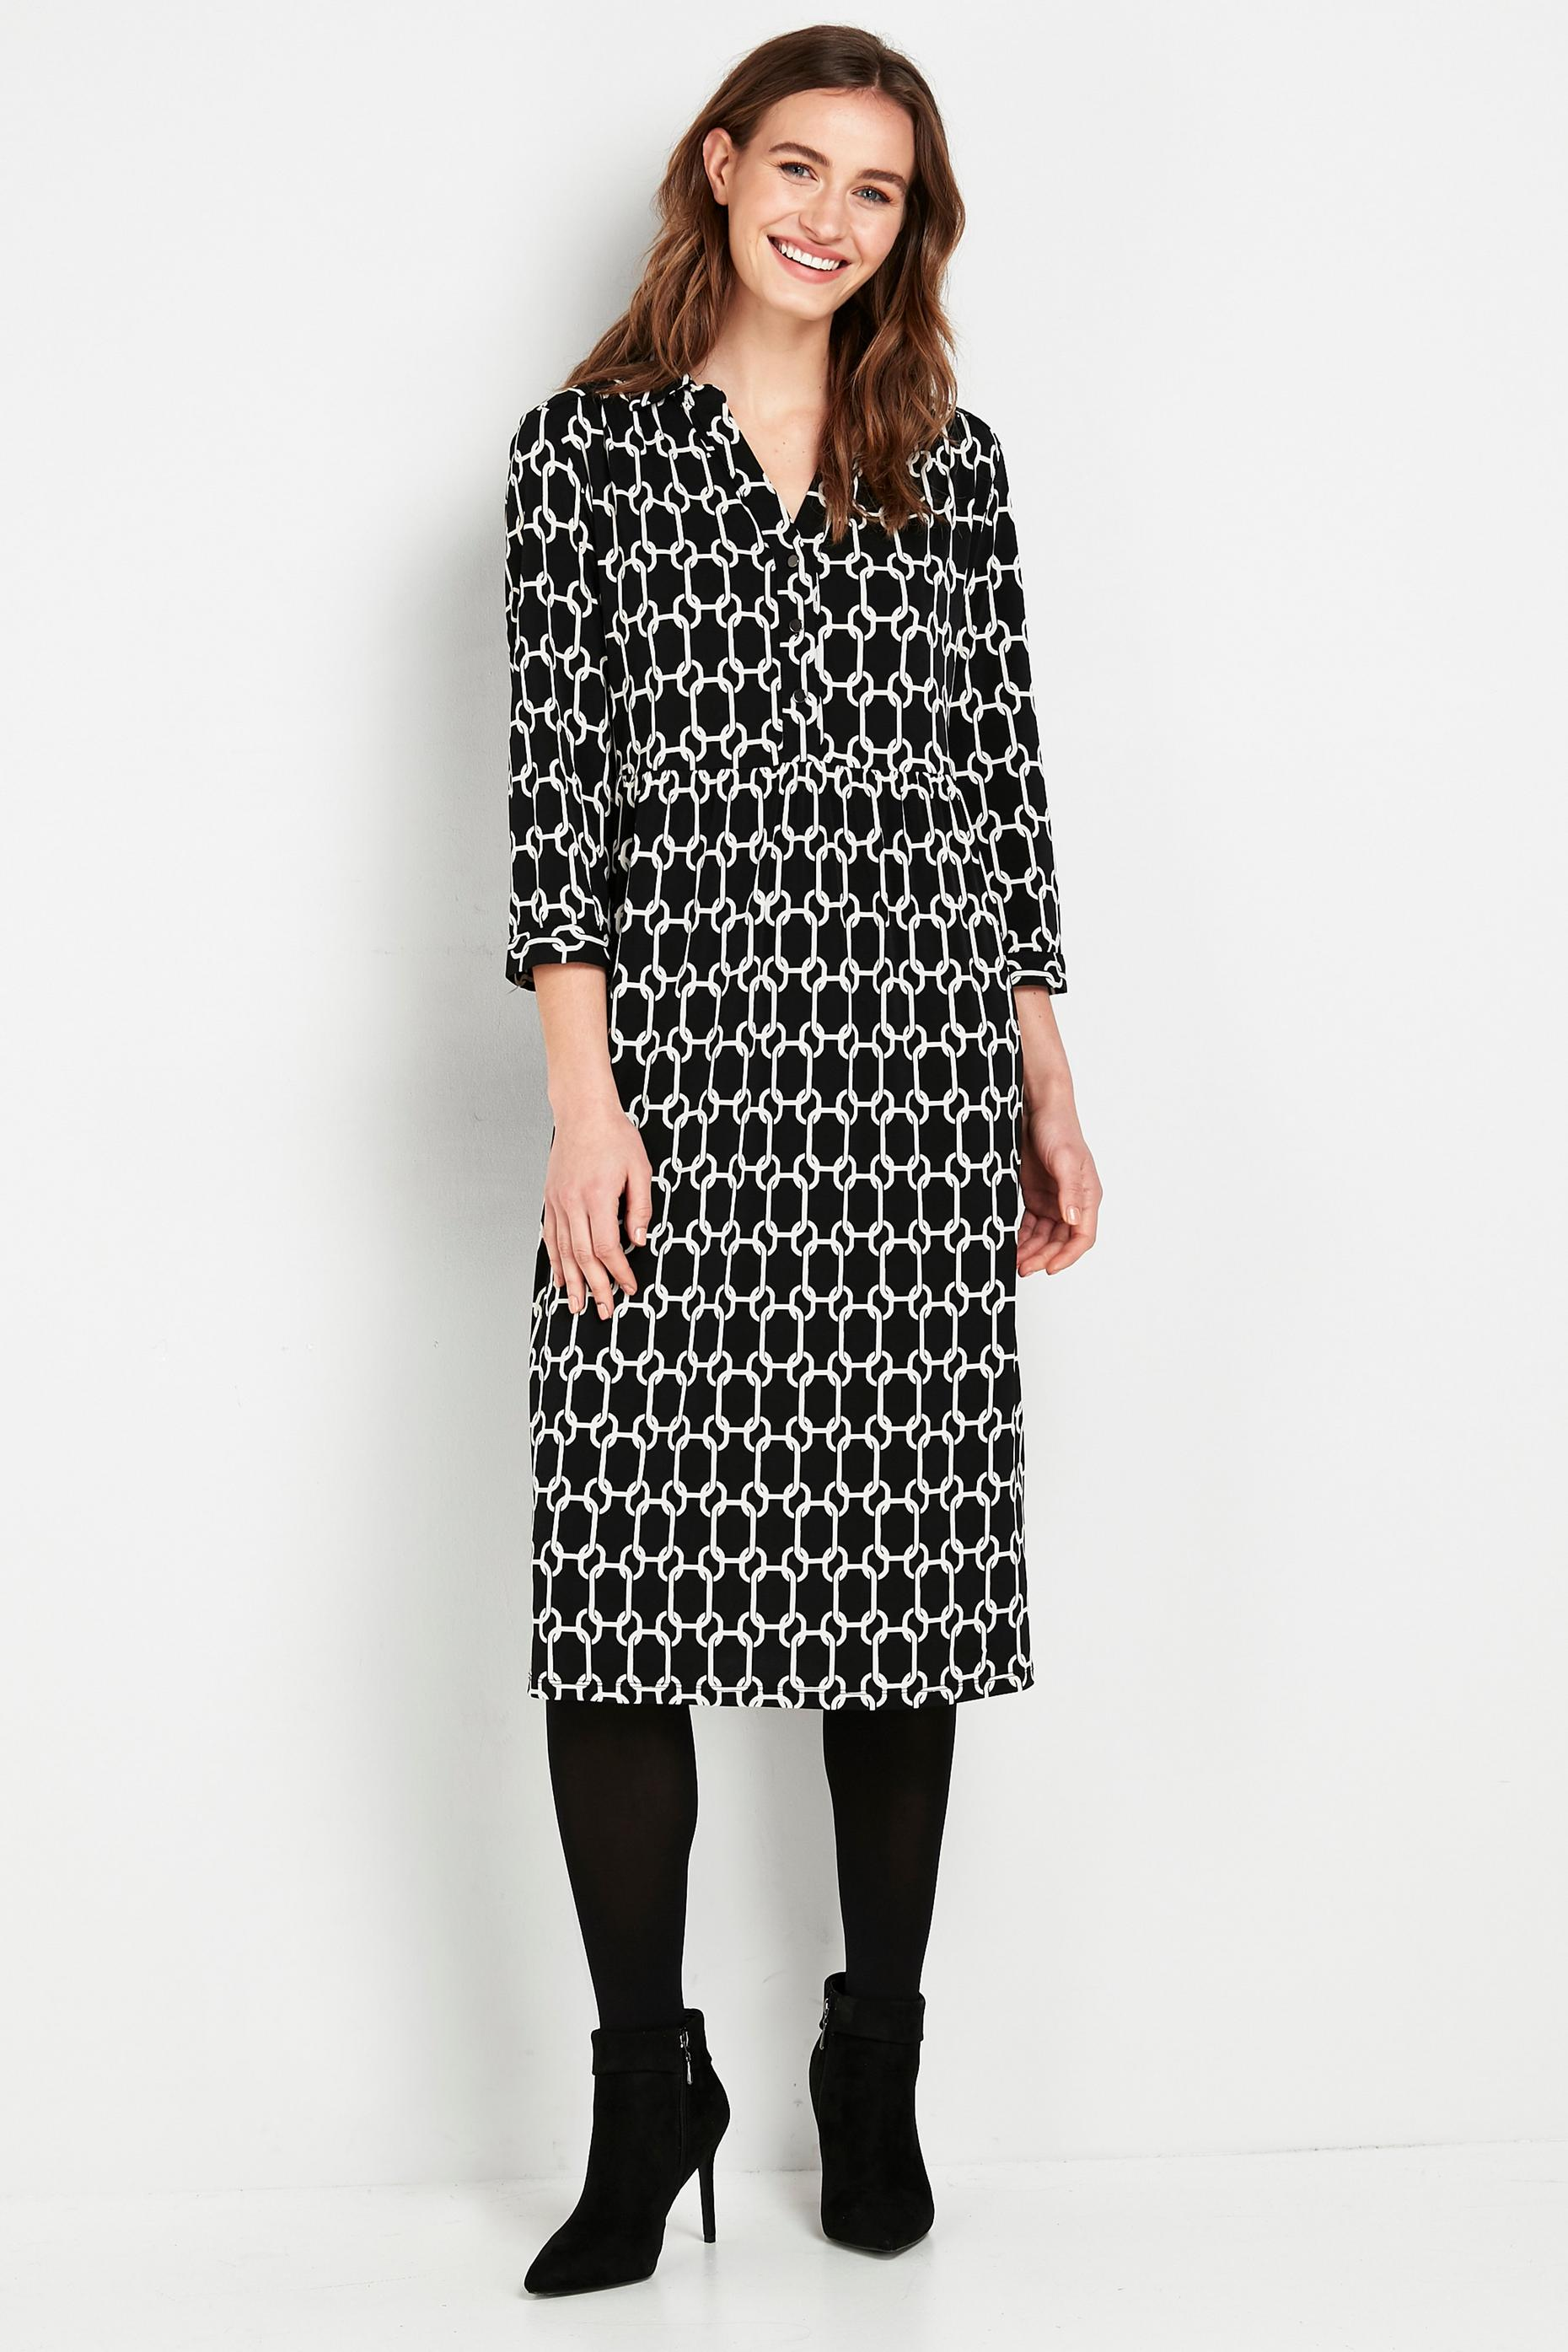 TALL Black Chain Print Shirt Dress